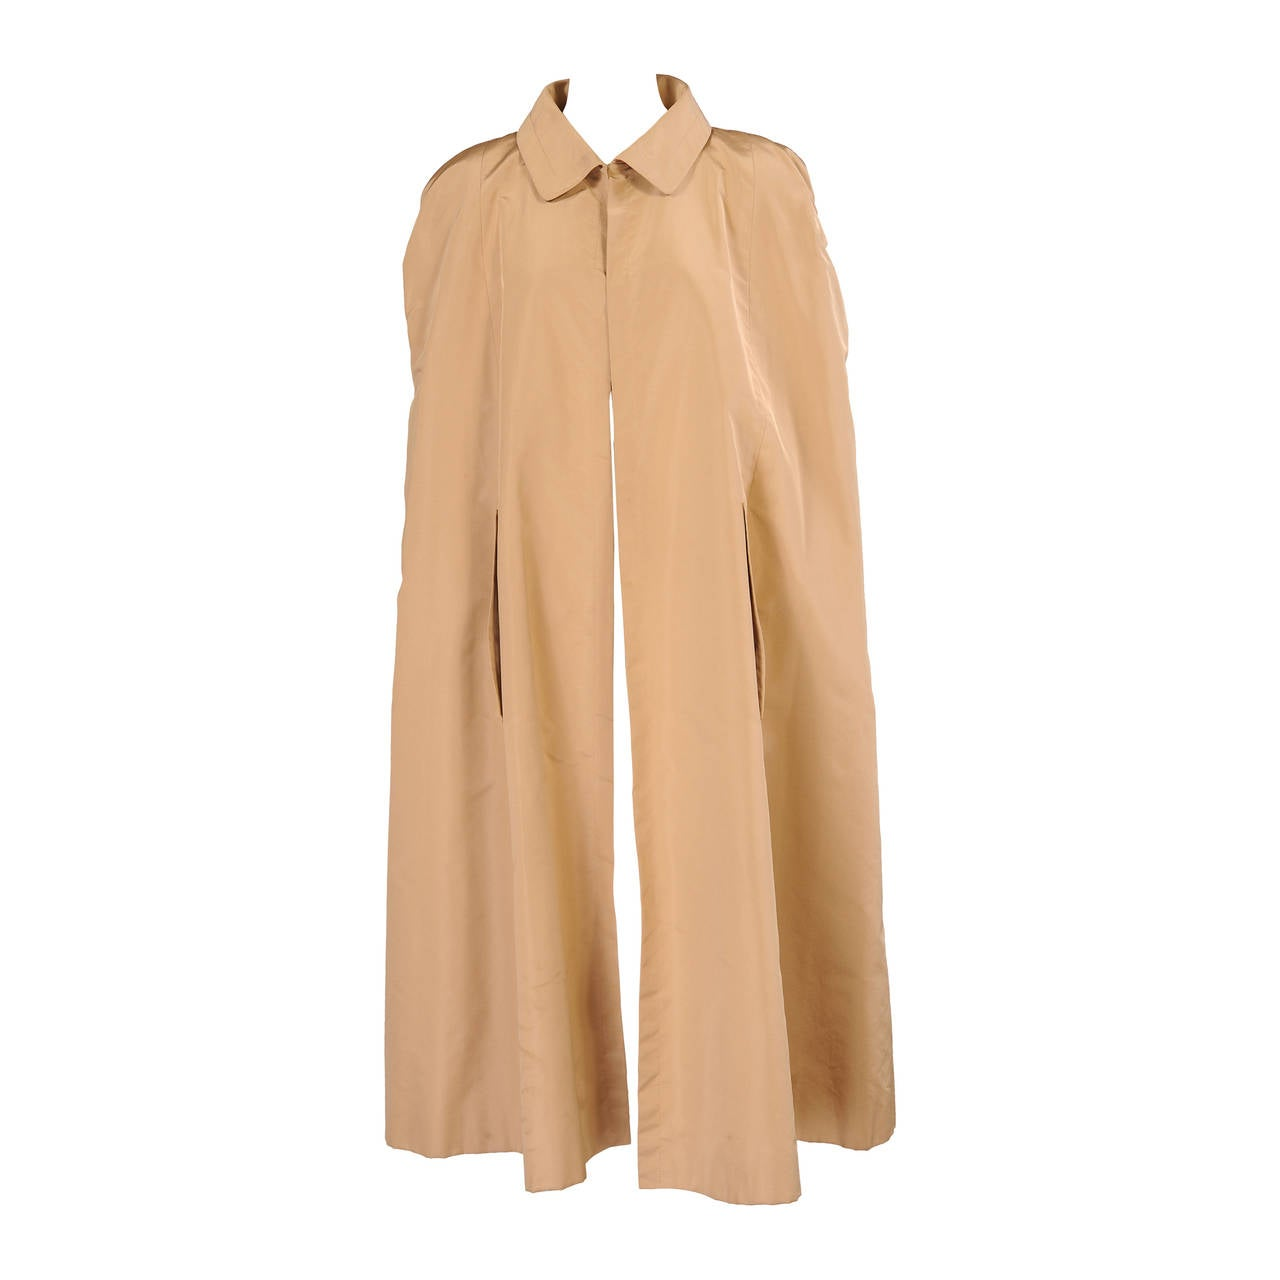 Givenchy Labelled Haute Couture Silk Faille Evening Cape For Sale